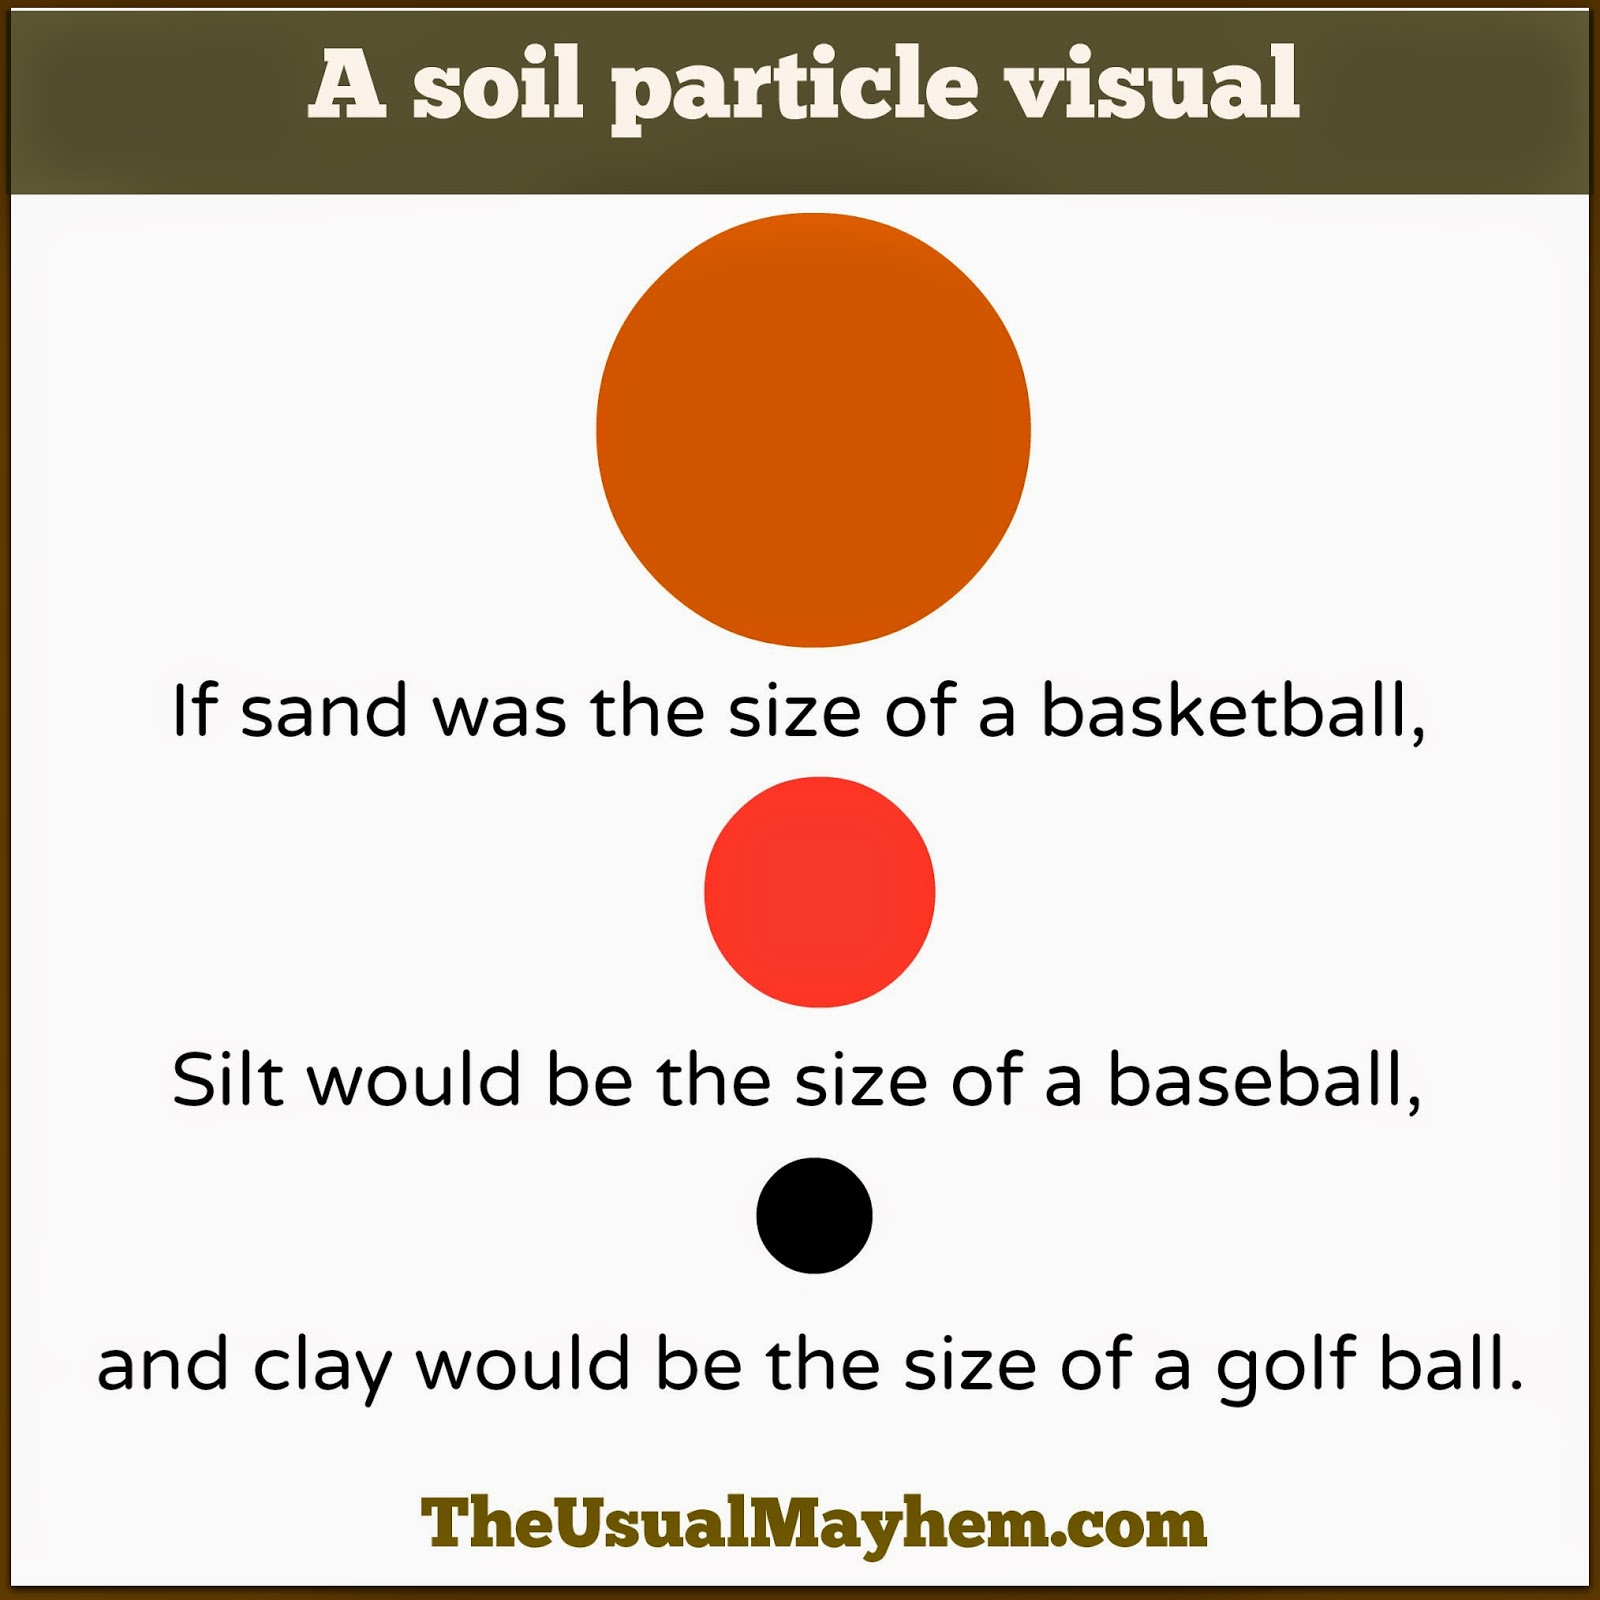 soil particles visual image